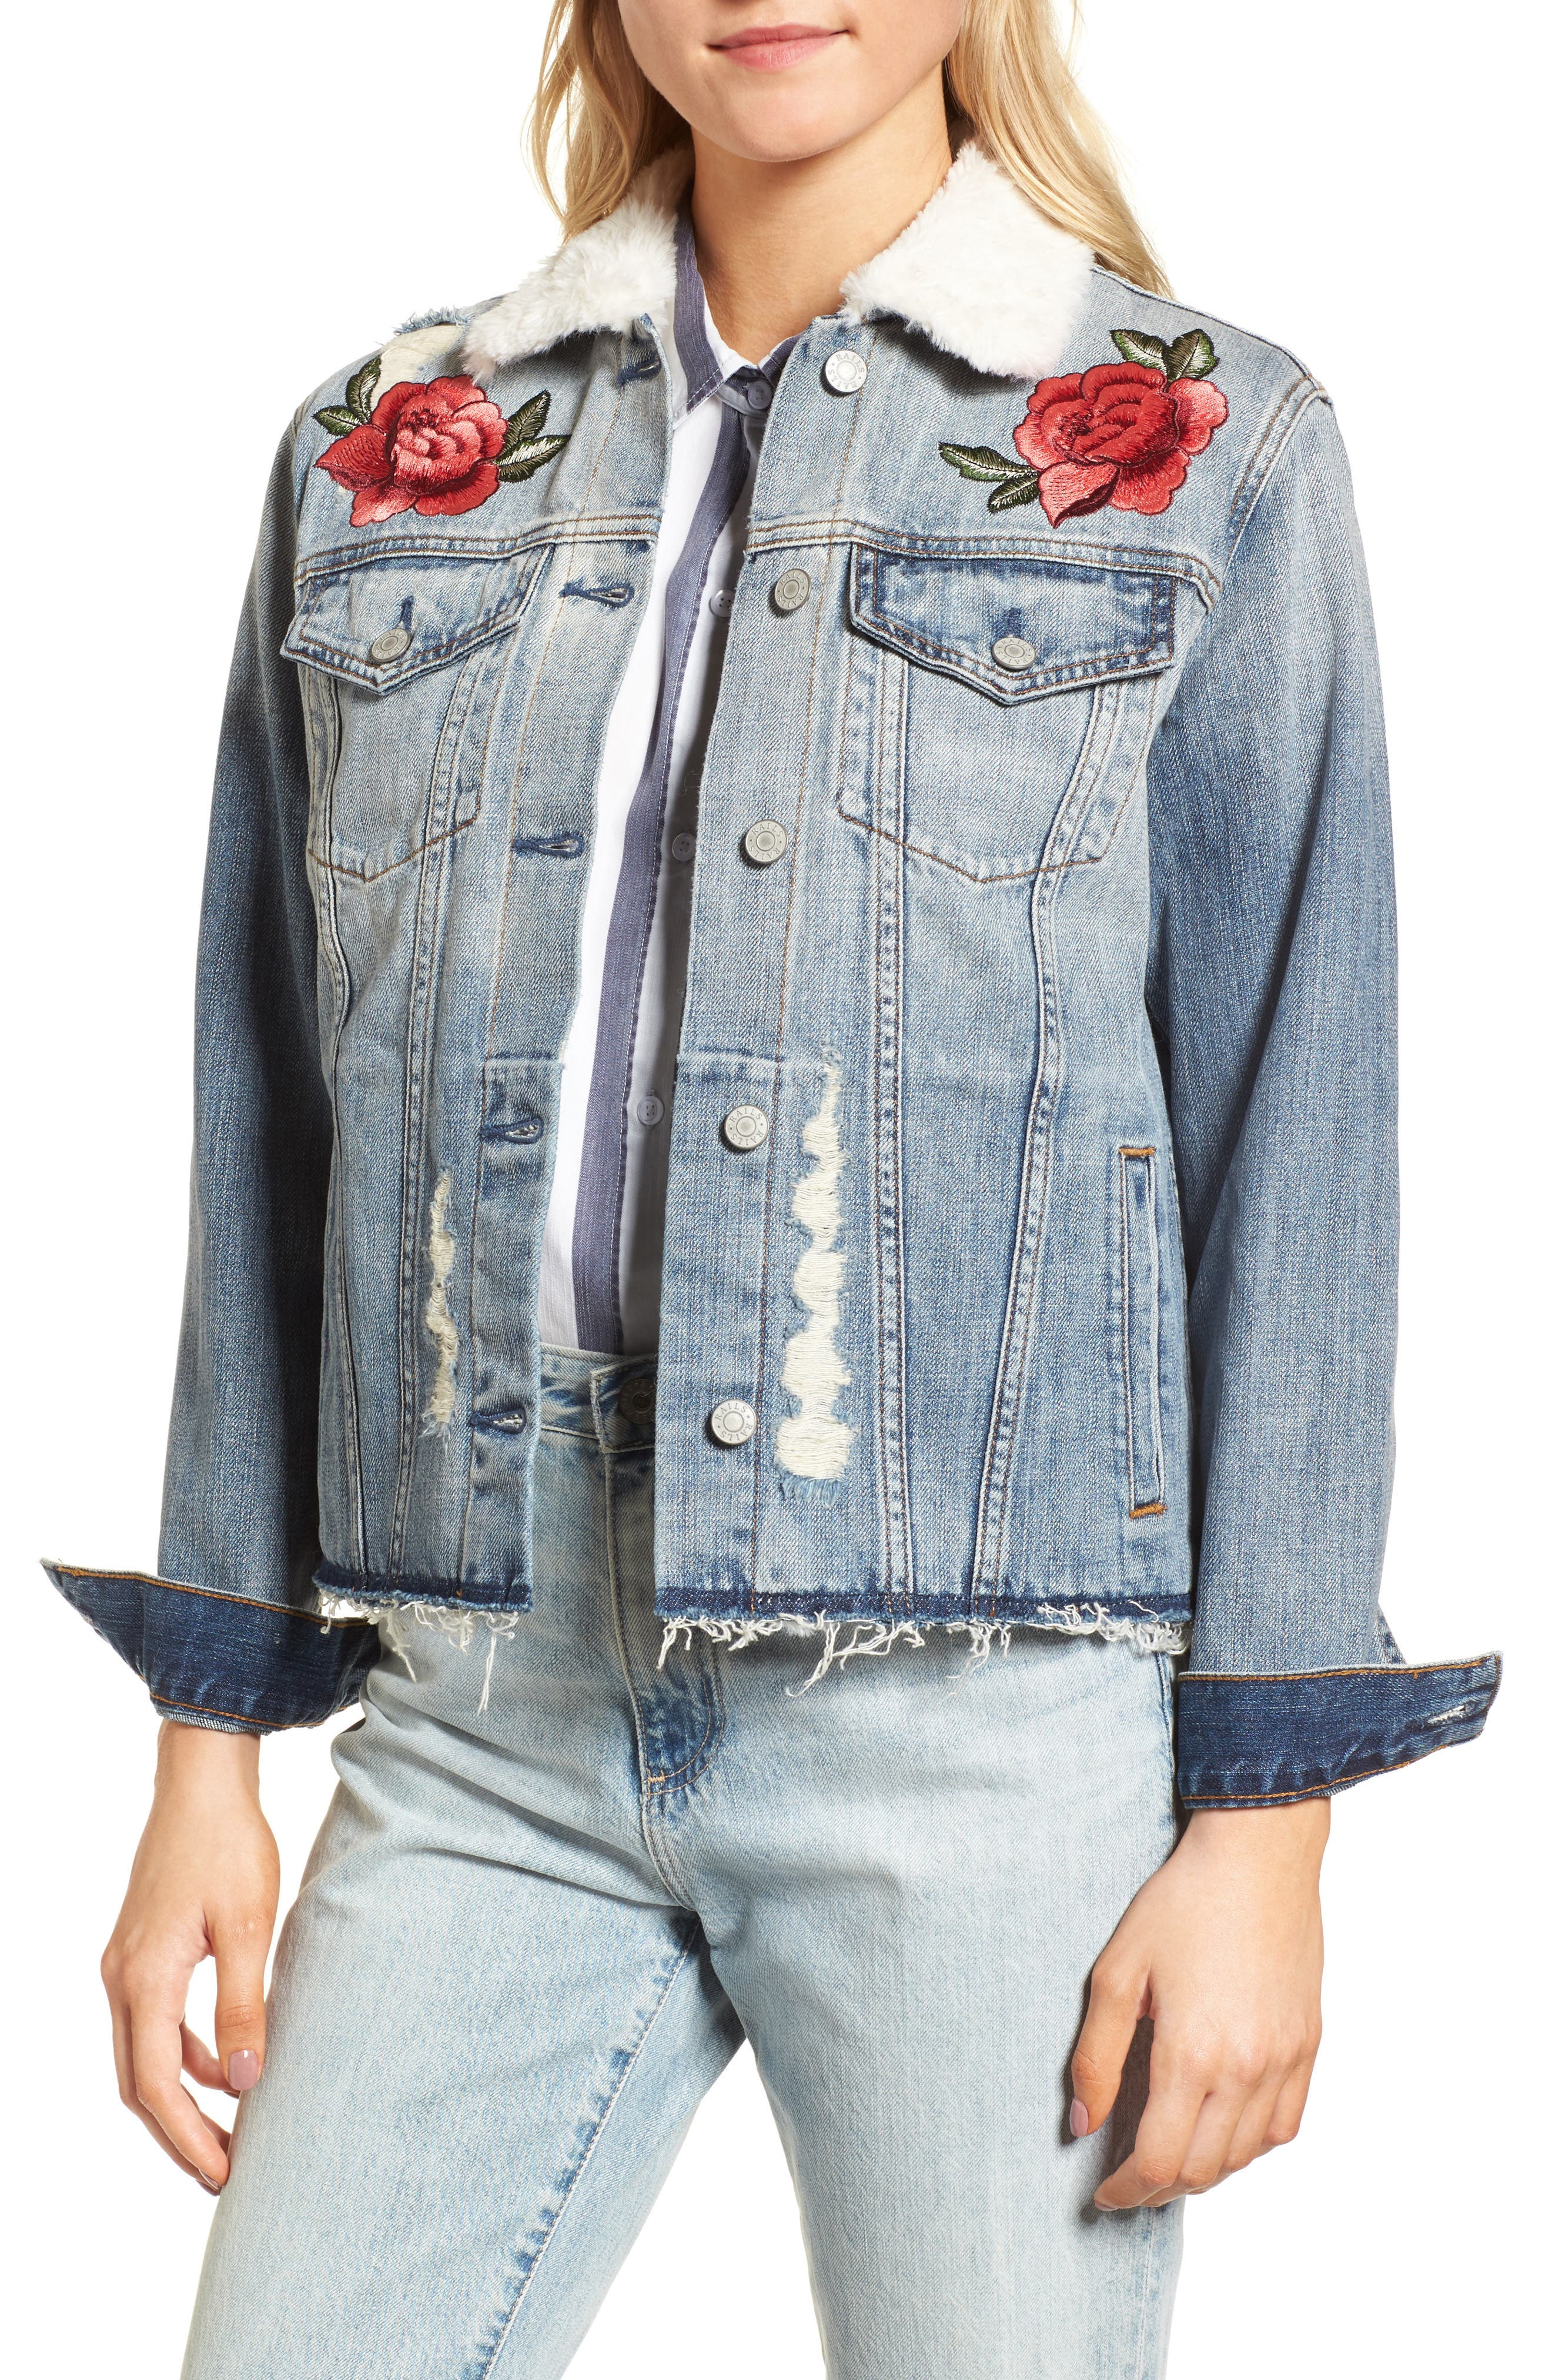 Ramsey Embroidered Denim Jacket,                             Main thumbnail 1, color,                             493